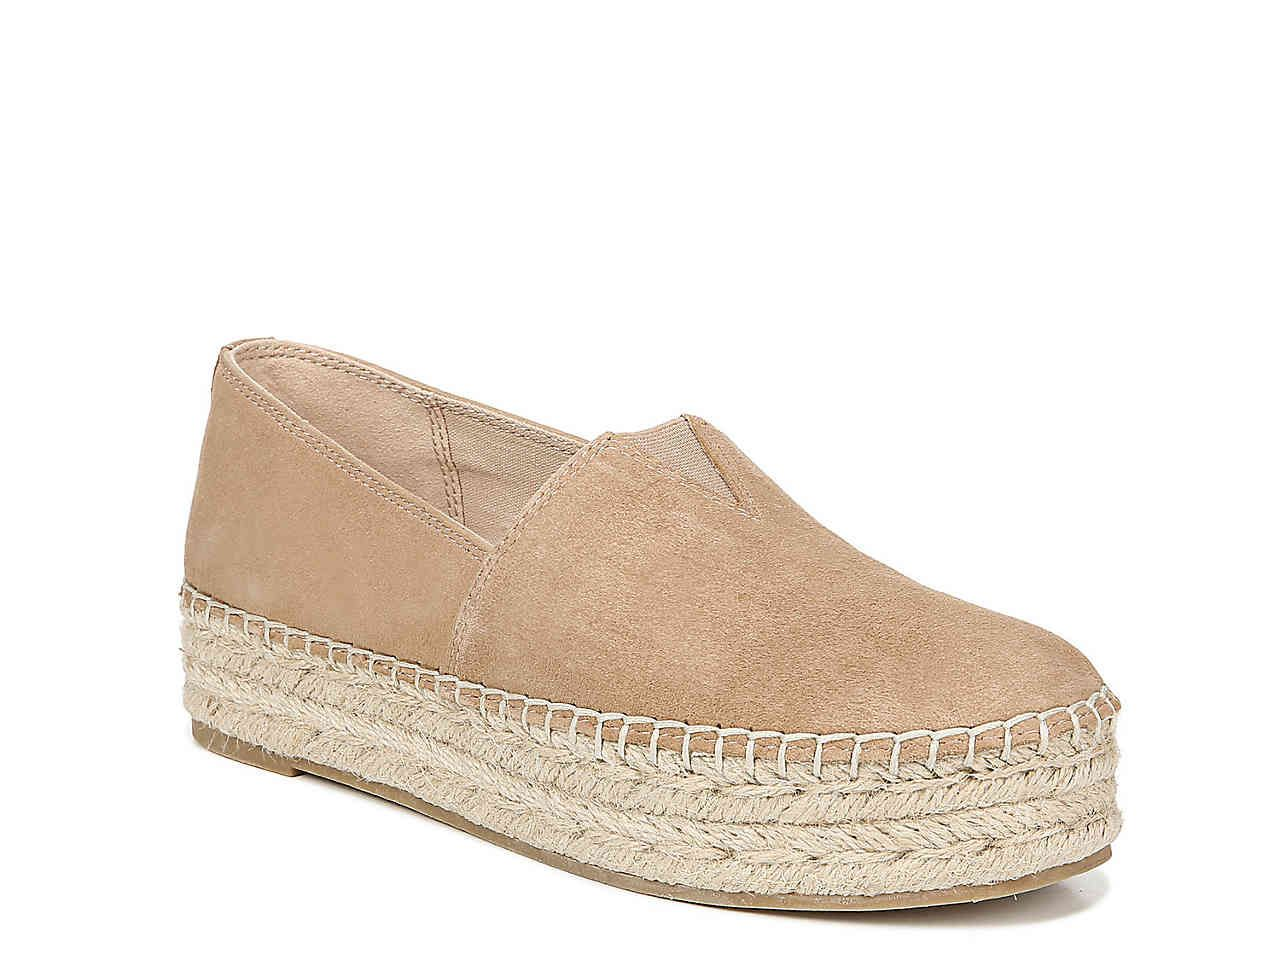 4fee8f011 Women Cherlene Espadrille Platform Slip-On -Camel Brown in 2019 ...